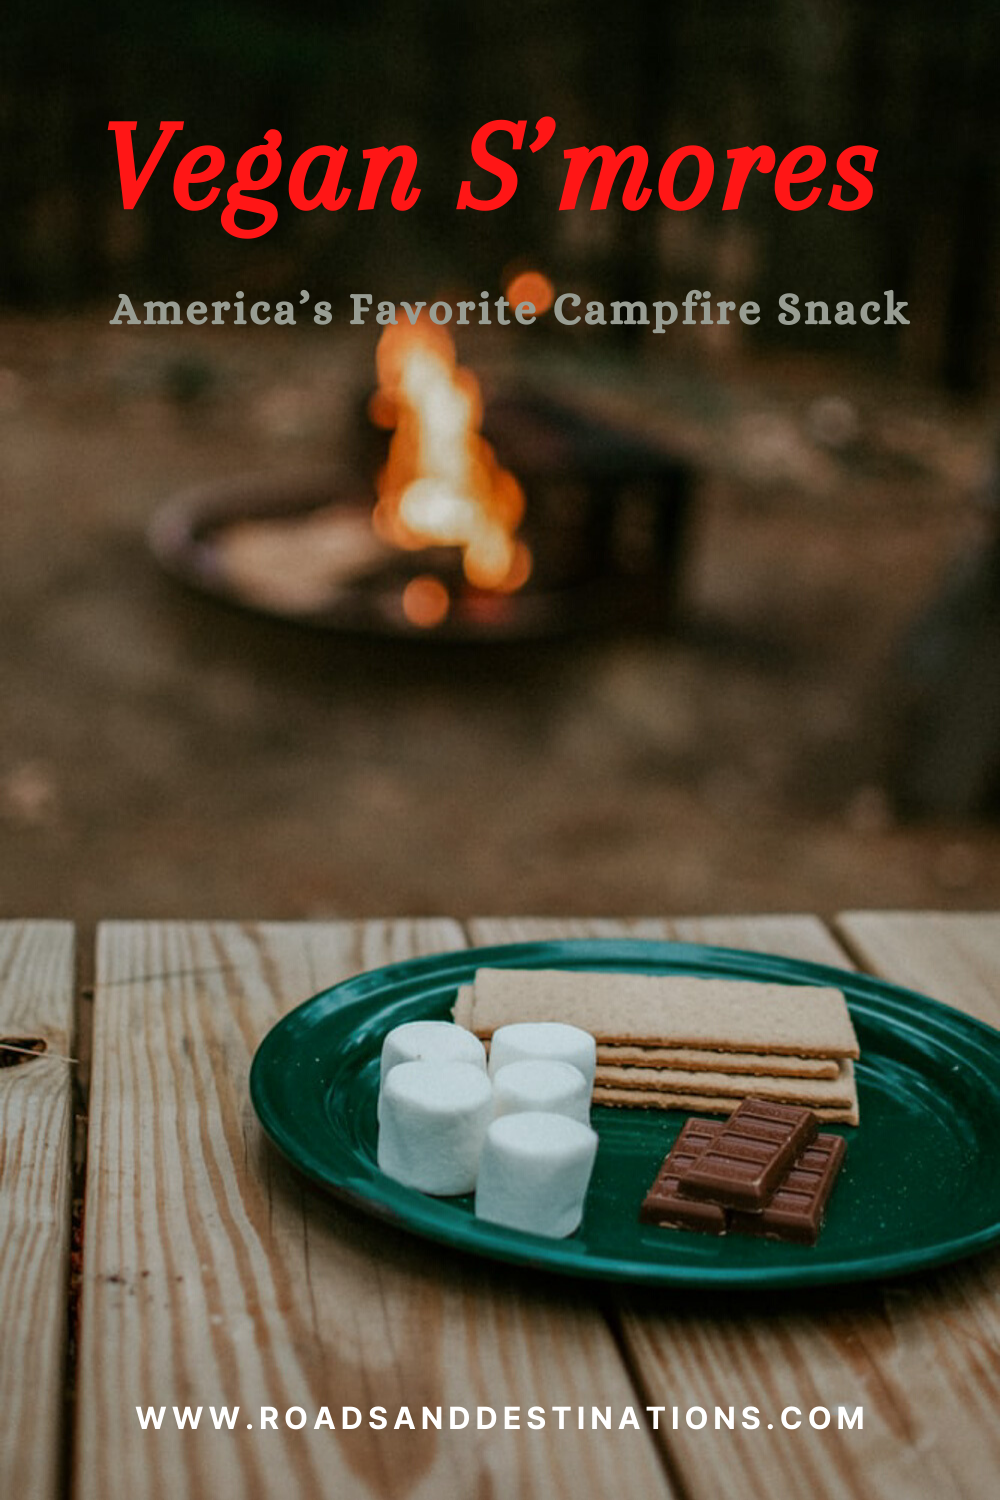 Vegan S'mores. America's Favorite Campfire Snack - Roads and Destinations